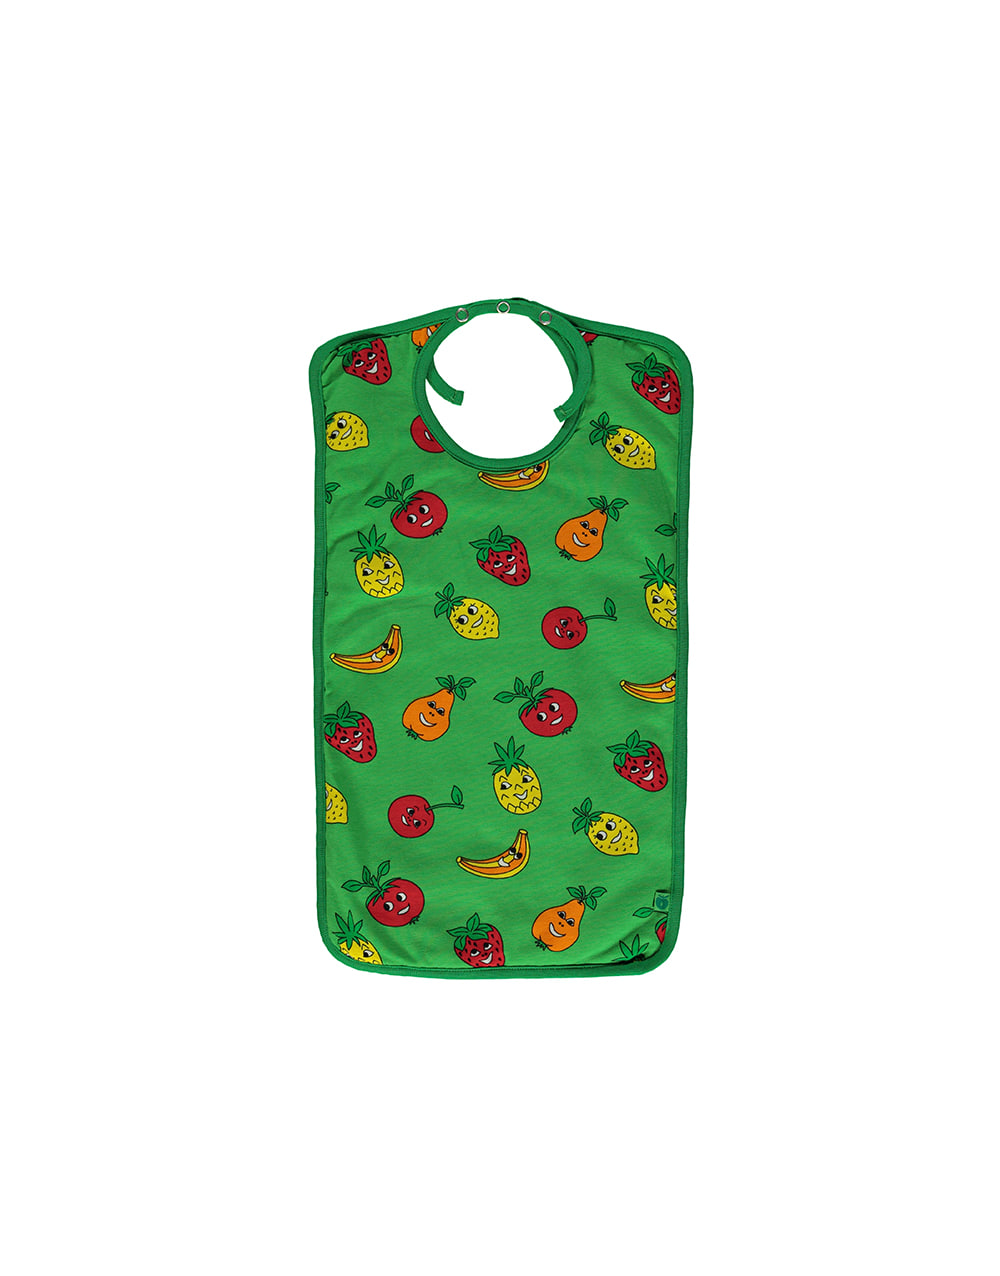 SMAFOLK  Turnable Bib Square with fruits   big Green